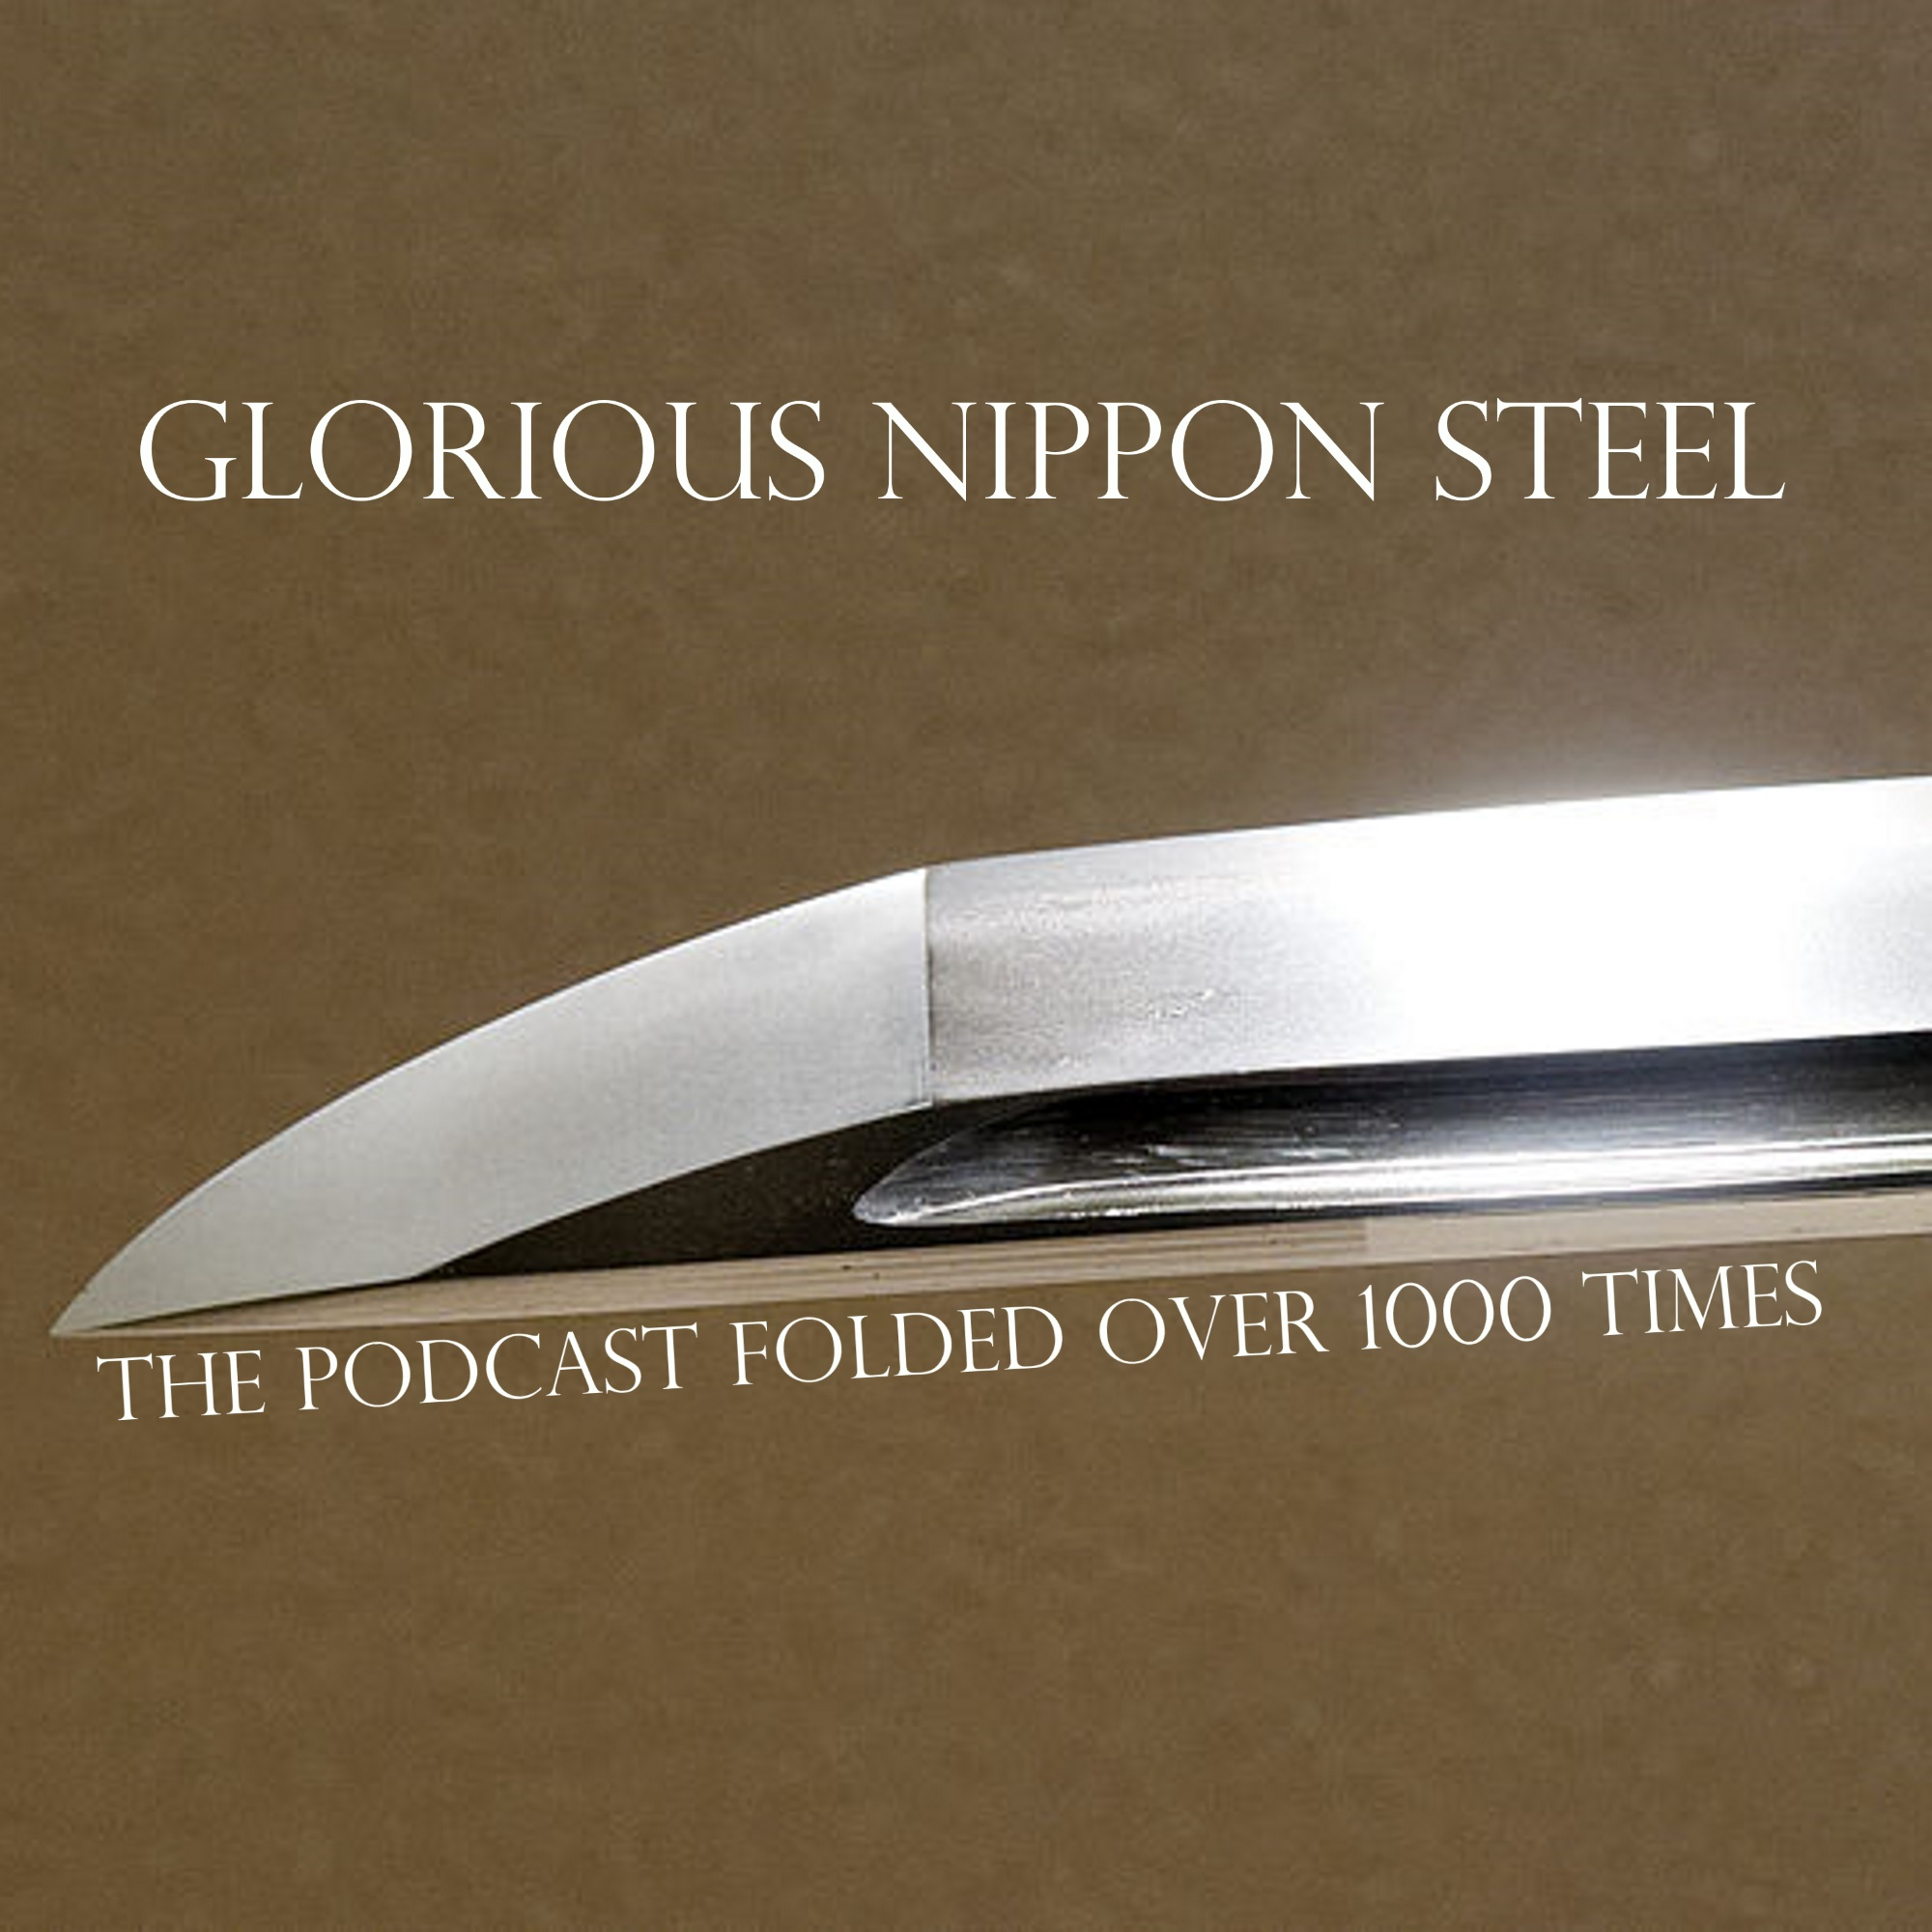 Glorious Nippon Steel The Podcast Folded Over 1000 Times Podcast